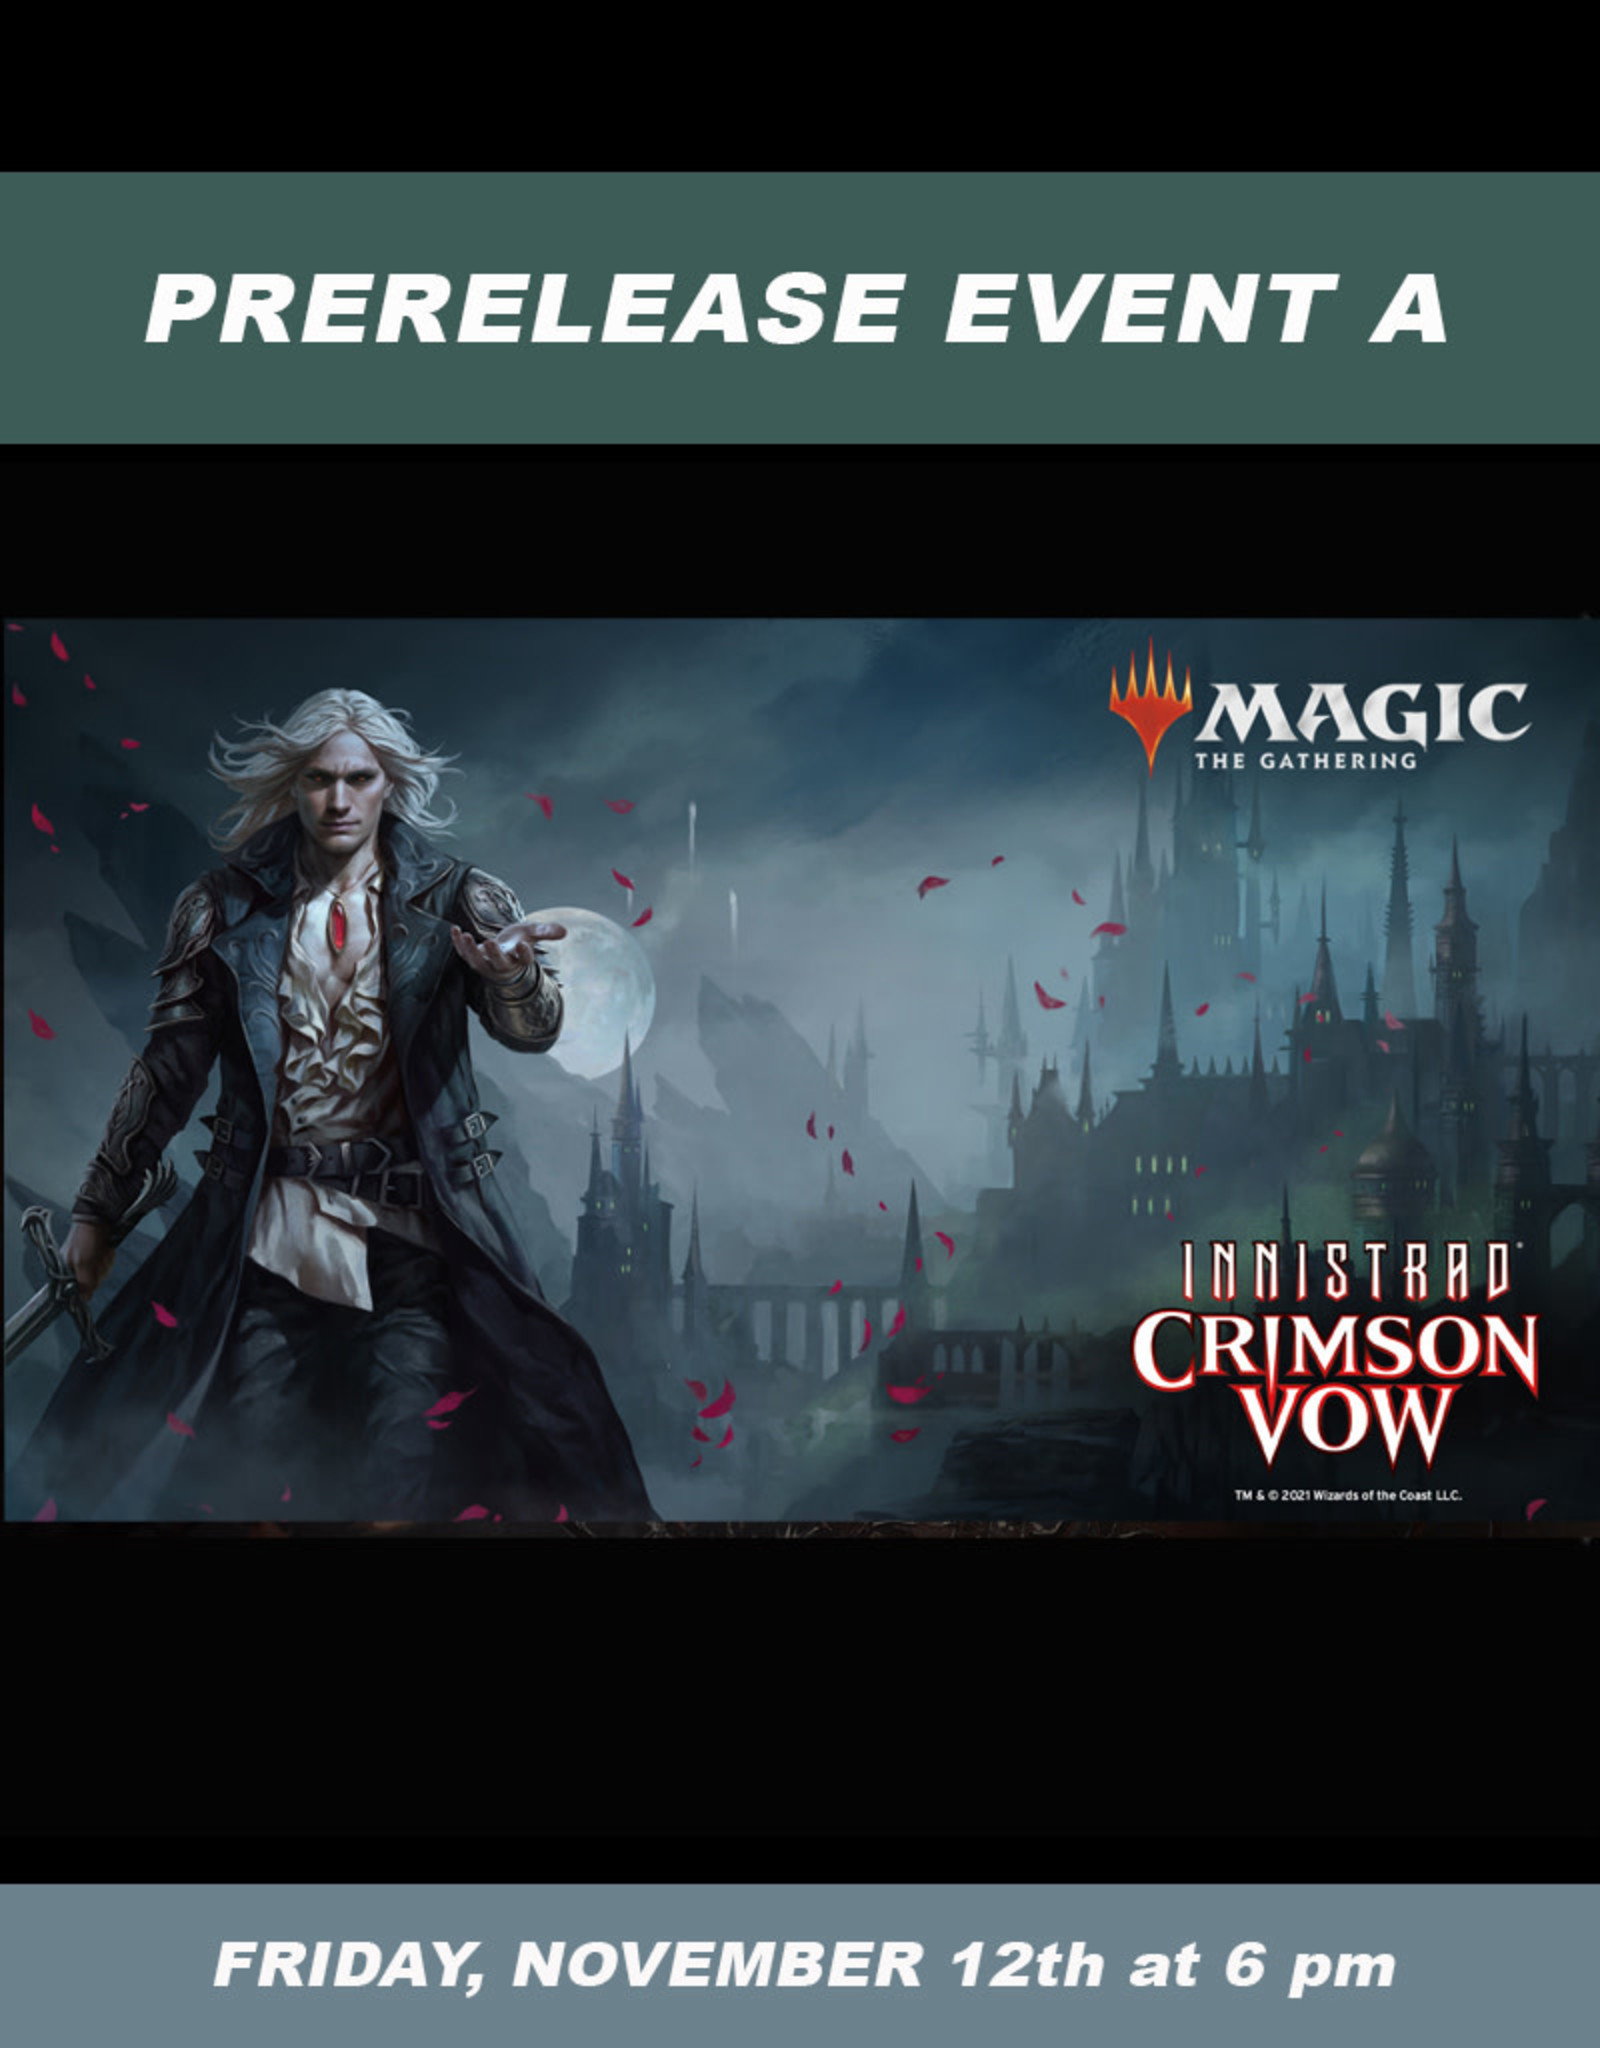 Wizards of the Coast MTG Innistrad Crimson Vow Prerelease Sealed Event A (Friday, Nov. 12 at 6 pm)